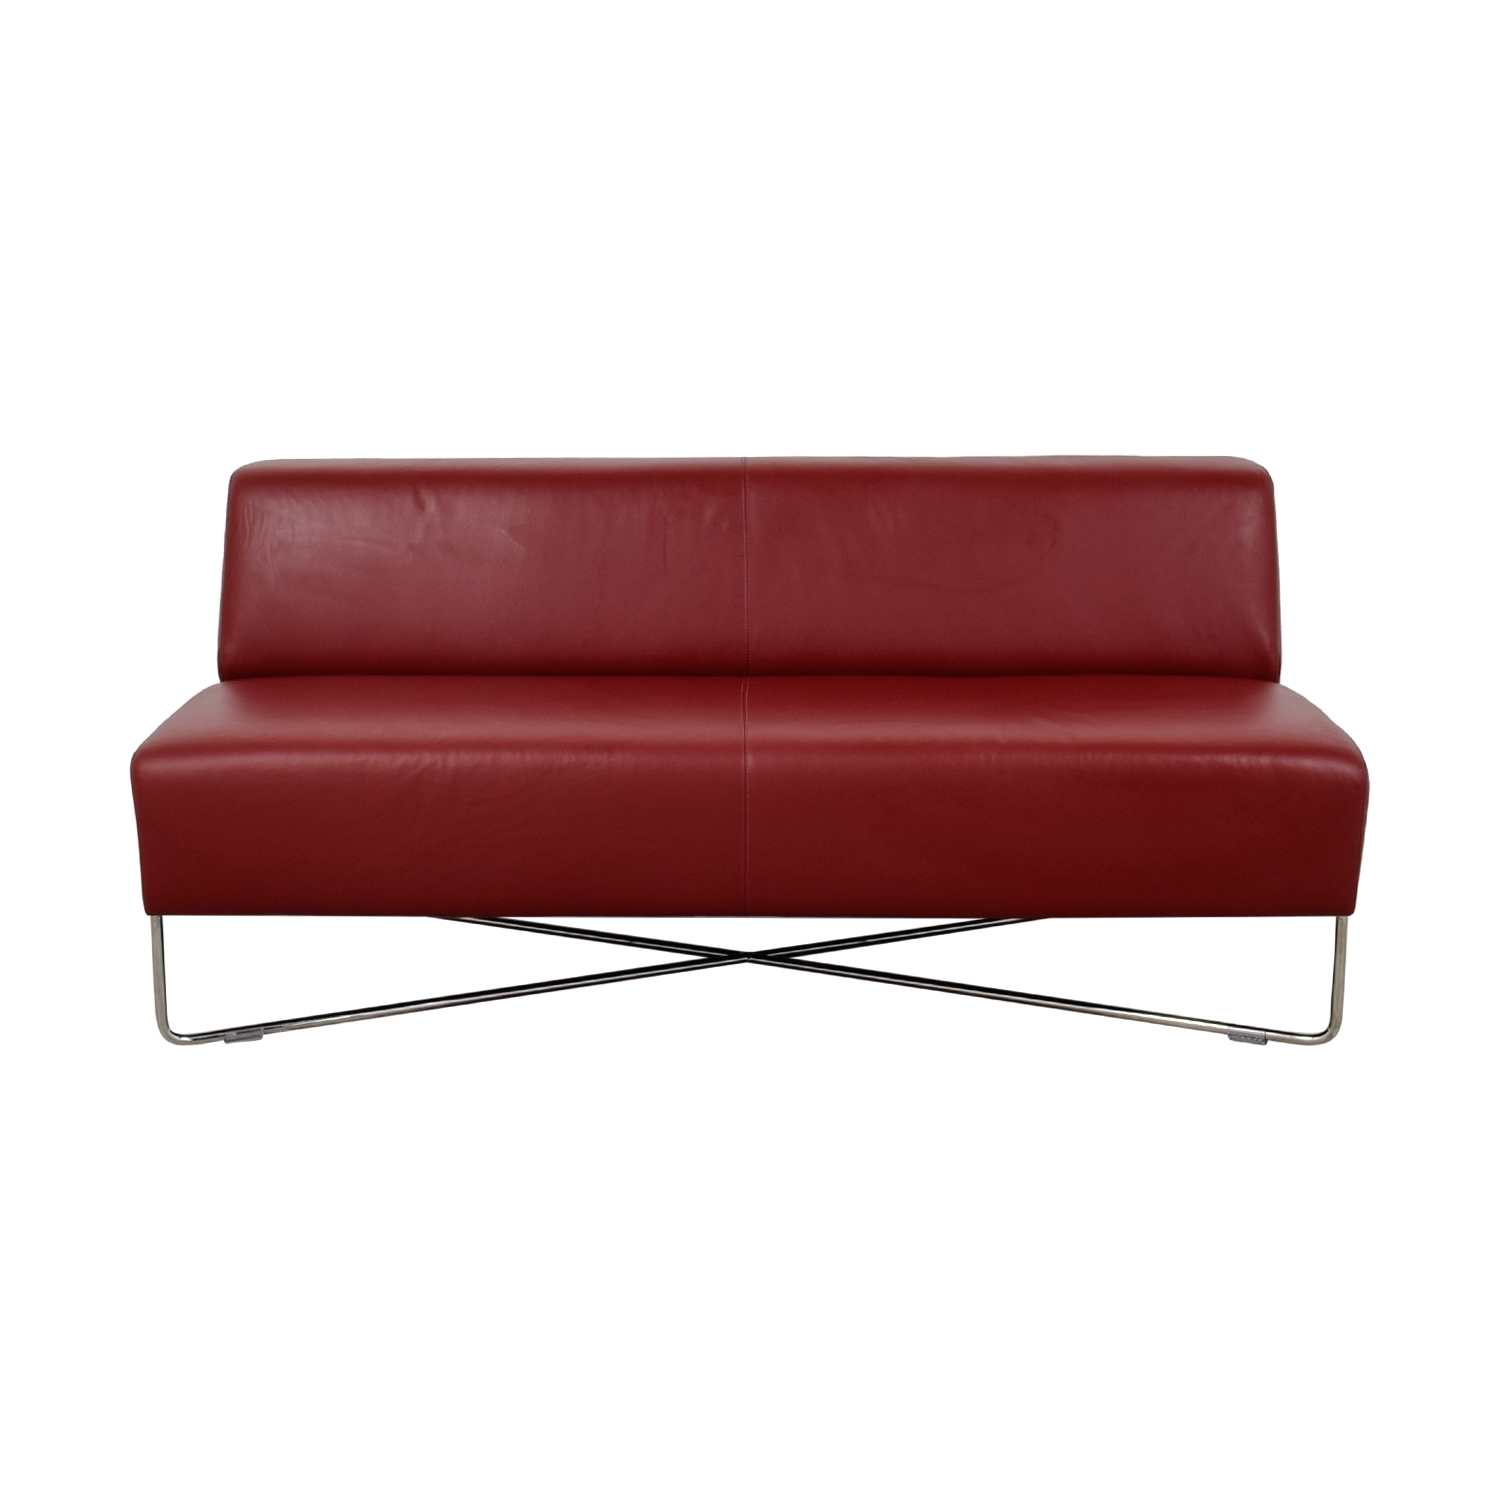 [%59% Off – Ikea Ikea Kivik Grey Chaise / Sofas Inside Most Recently Released Red Chaises|Red Chaises With Regard To Well Known 59% Off – Ikea Ikea Kivik Grey Chaise / Sofas|Best And Newest Red Chaises In 59% Off – Ikea Ikea Kivik Grey Chaise / Sofas|Newest 59% Off – Ikea Ikea Kivik Grey Chaise / Sofas In Red Chaises%] (View 1 of 15)